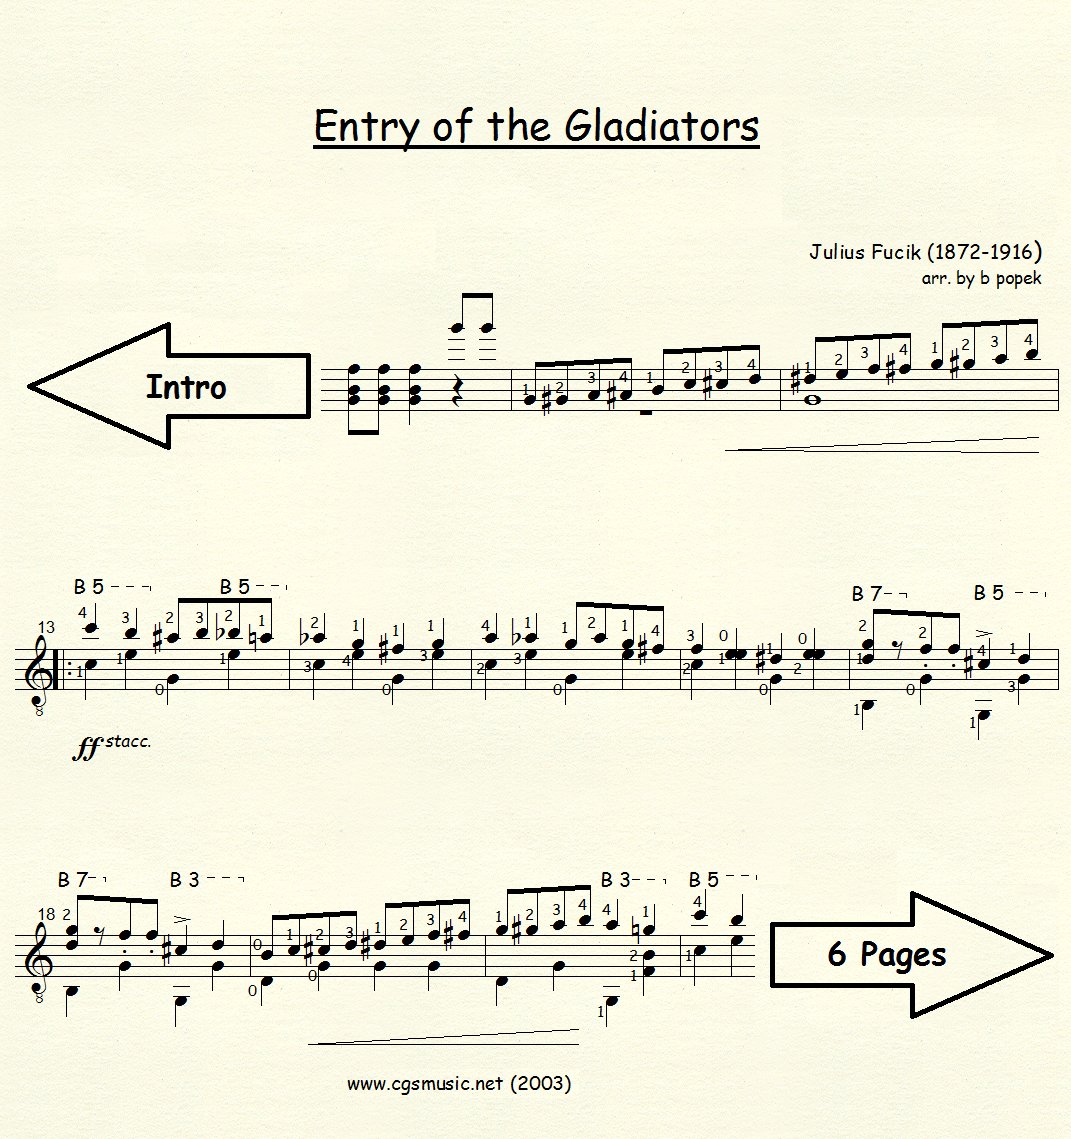 Entry of the Gladiators (Fucik) for Classical Guitar in Standard Notation